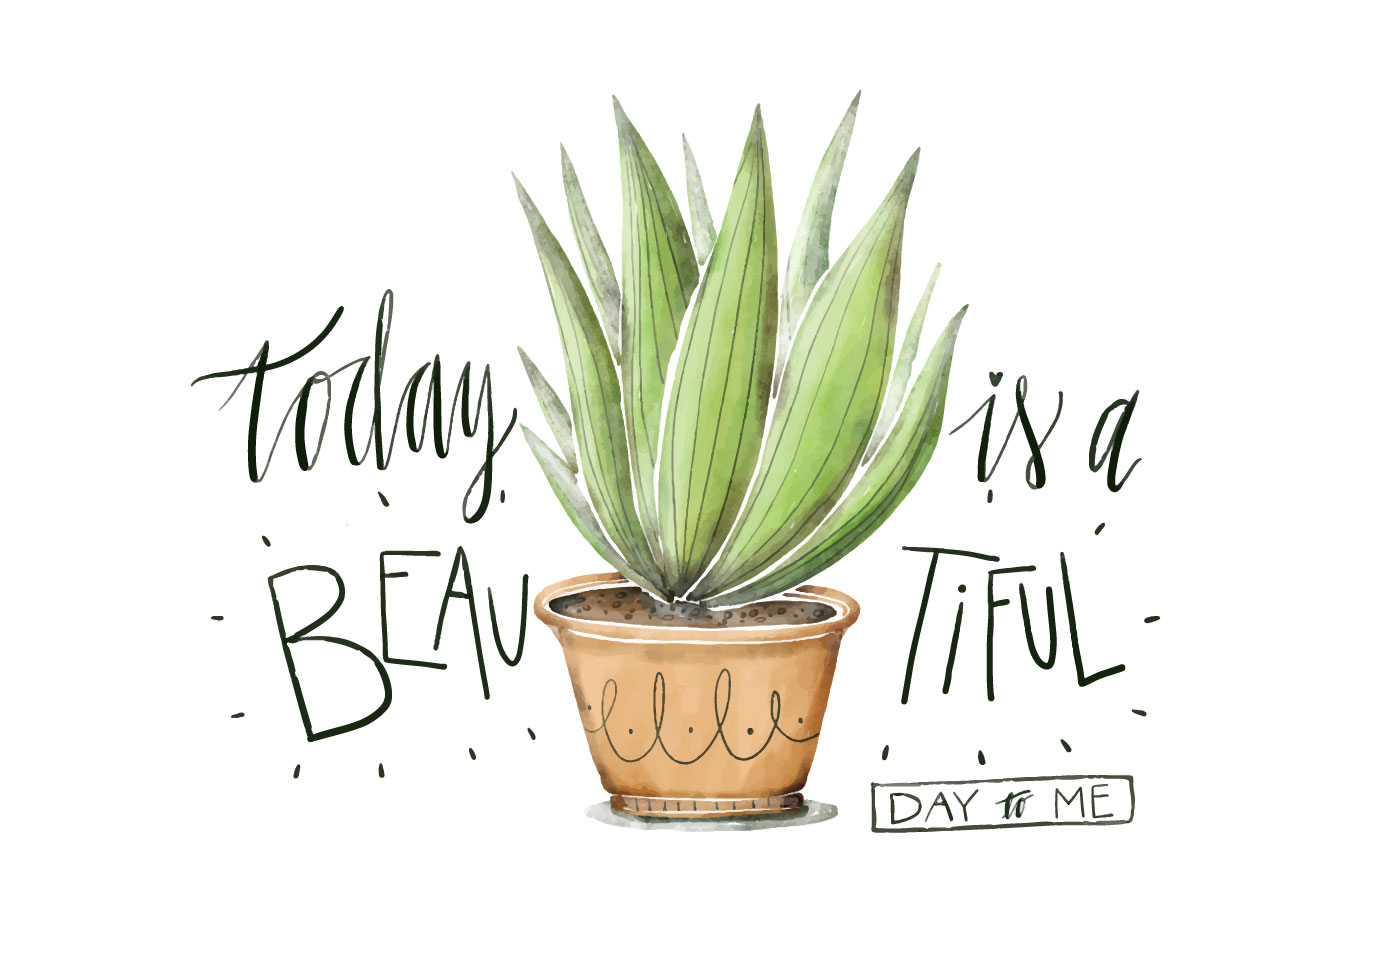 Cute Pinterest Quote Wallpapers Cute Plant Illustration Watercolor With Lettering Quote